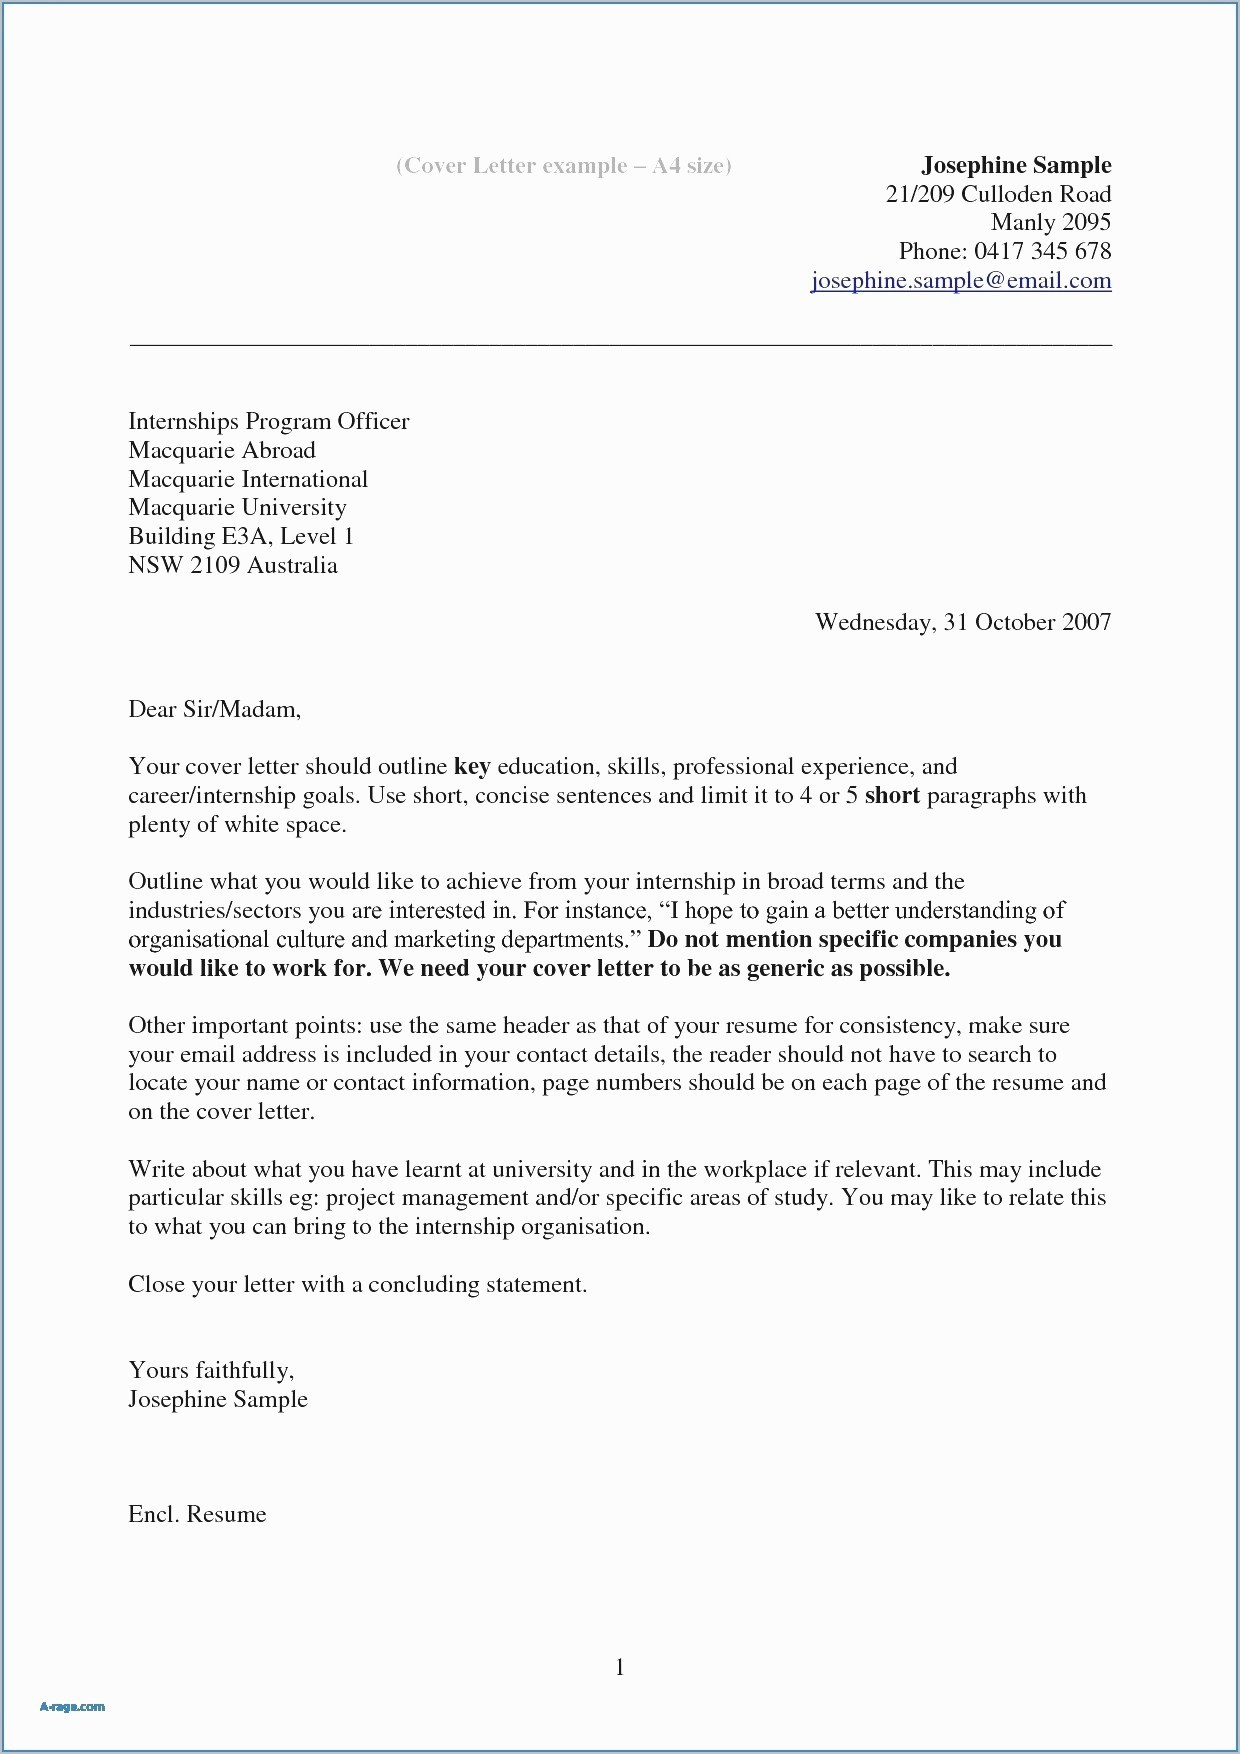 Company Letter Template - Resume Writing Panies Awesome Resume Writing Panies Lovely Email